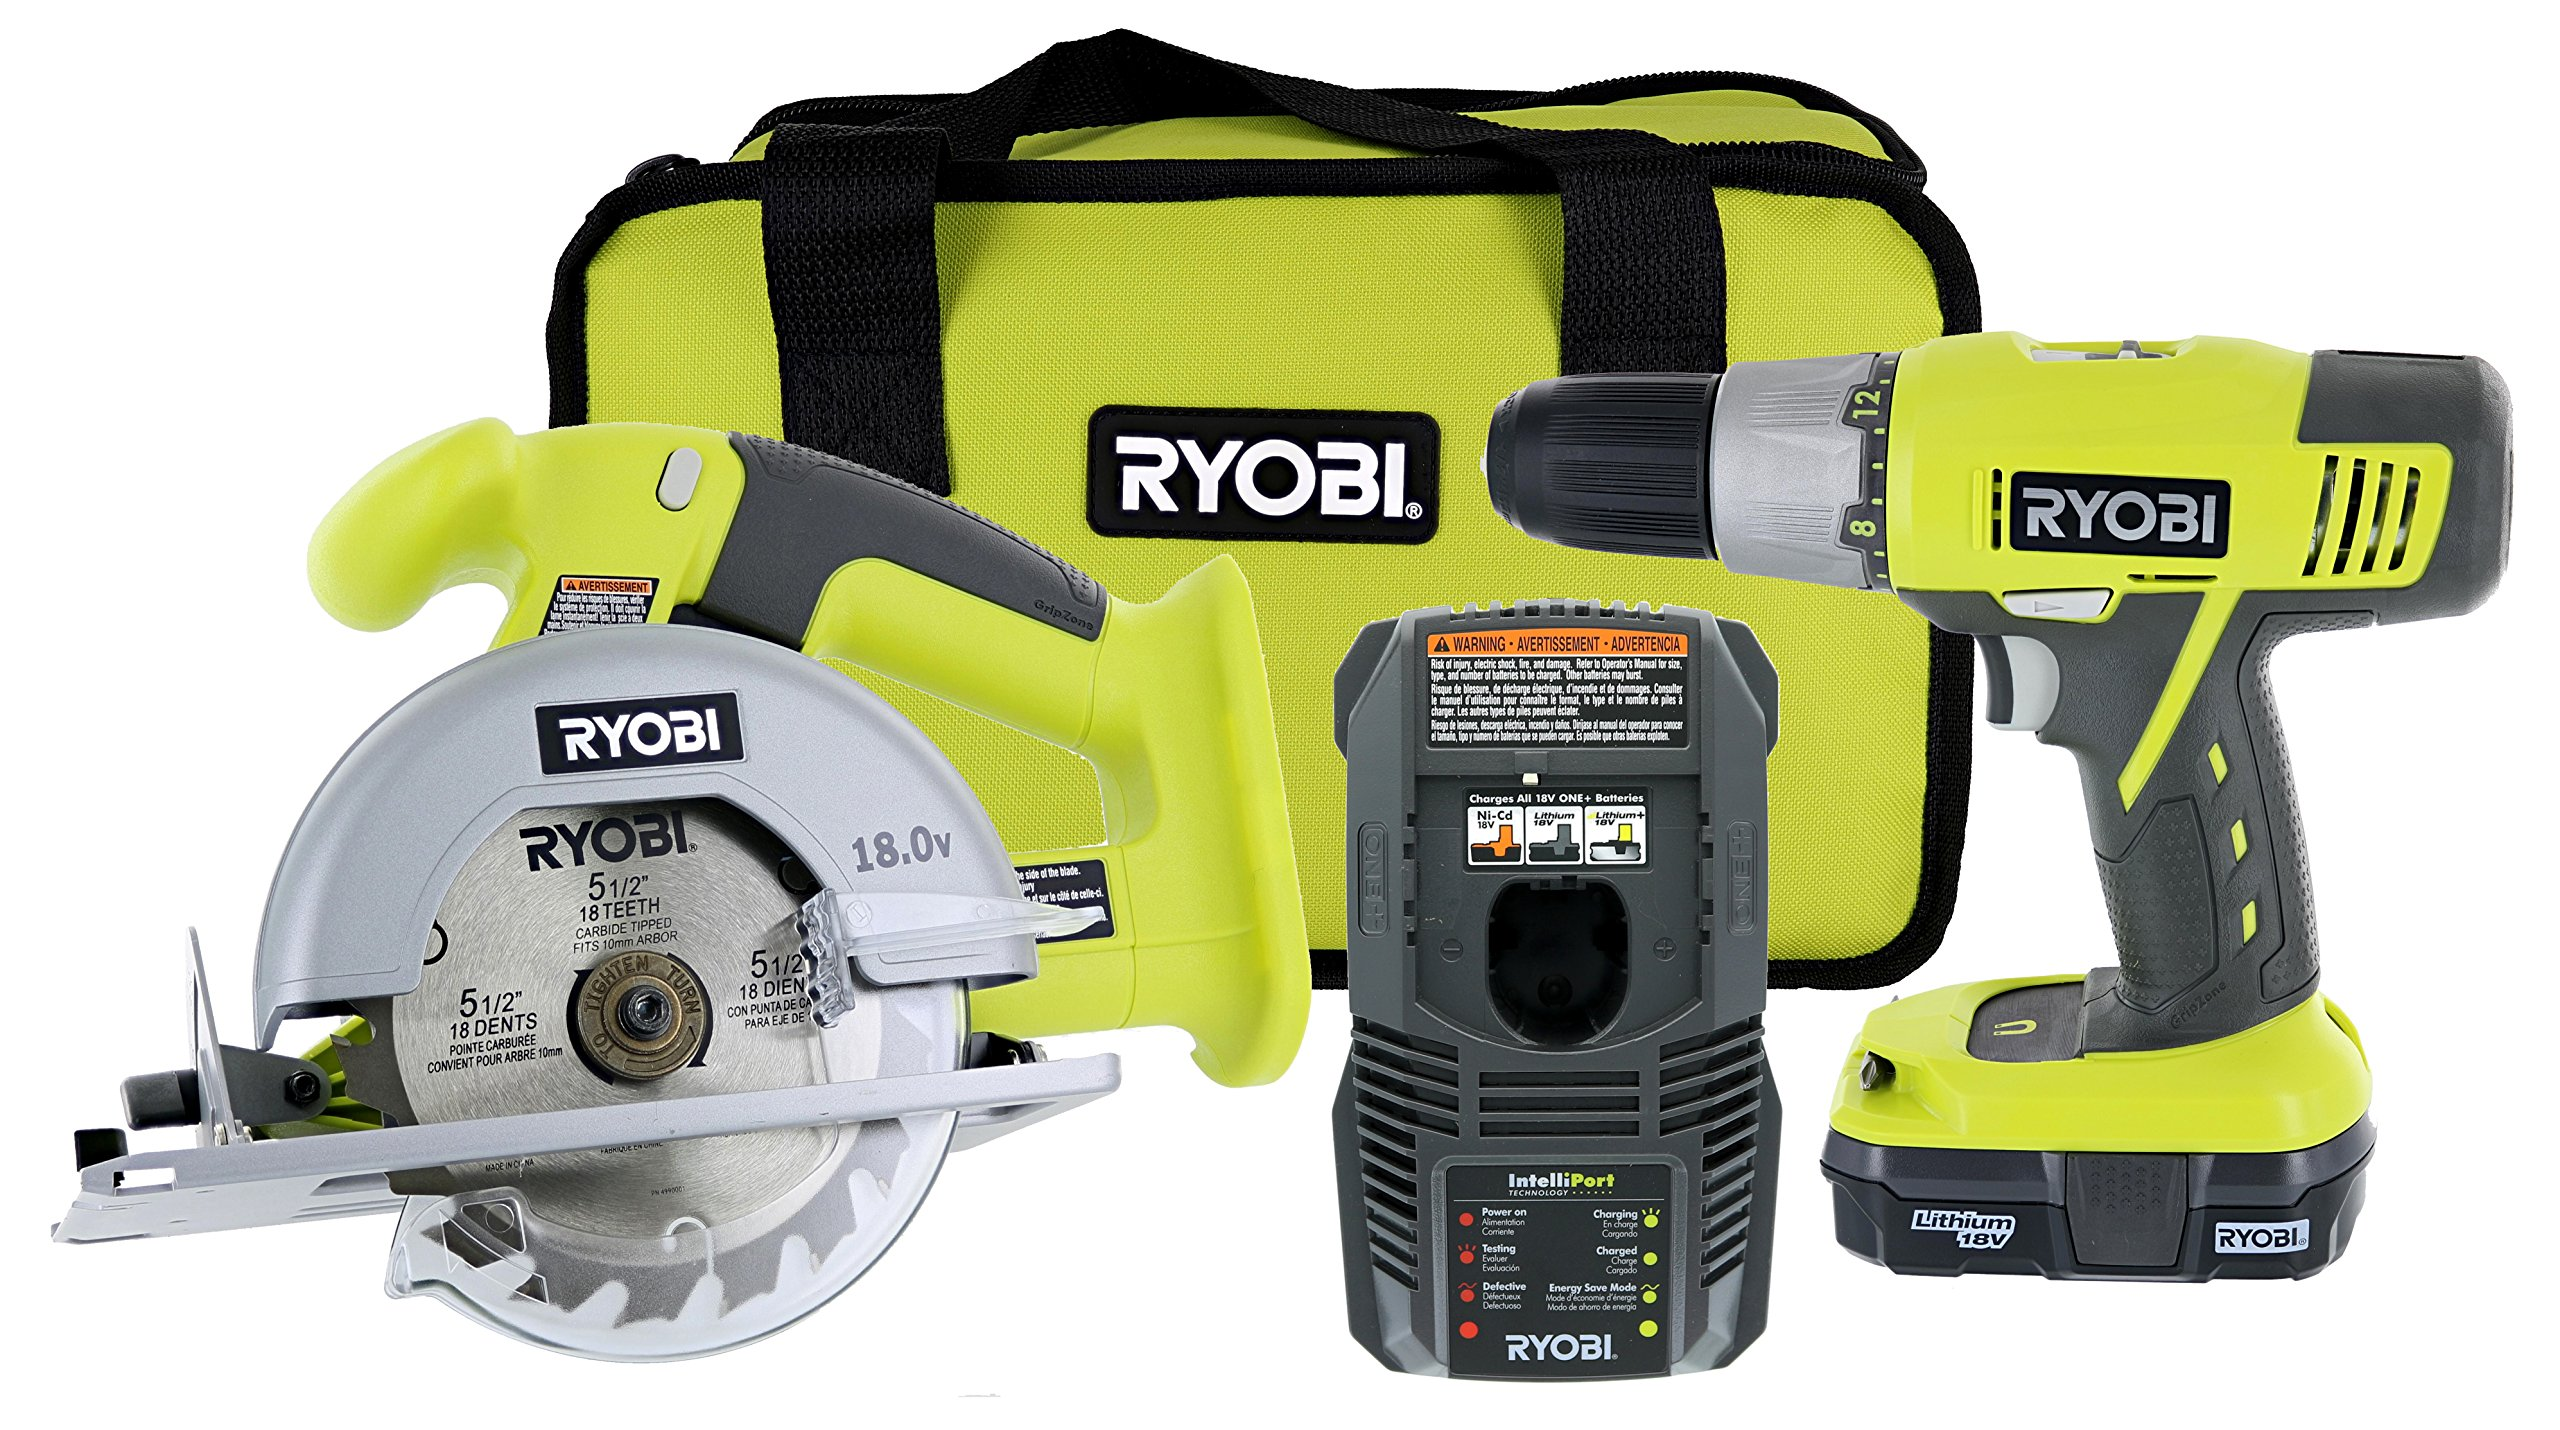 Ryobi P825 18V One+ Cordless Lithium Ion Power Tool Starter Kit (Includes 1/2'' Drill / Driver, 5 1/2'' Circular Saw, Compact Battery, Charger, and Contractor's Bag)